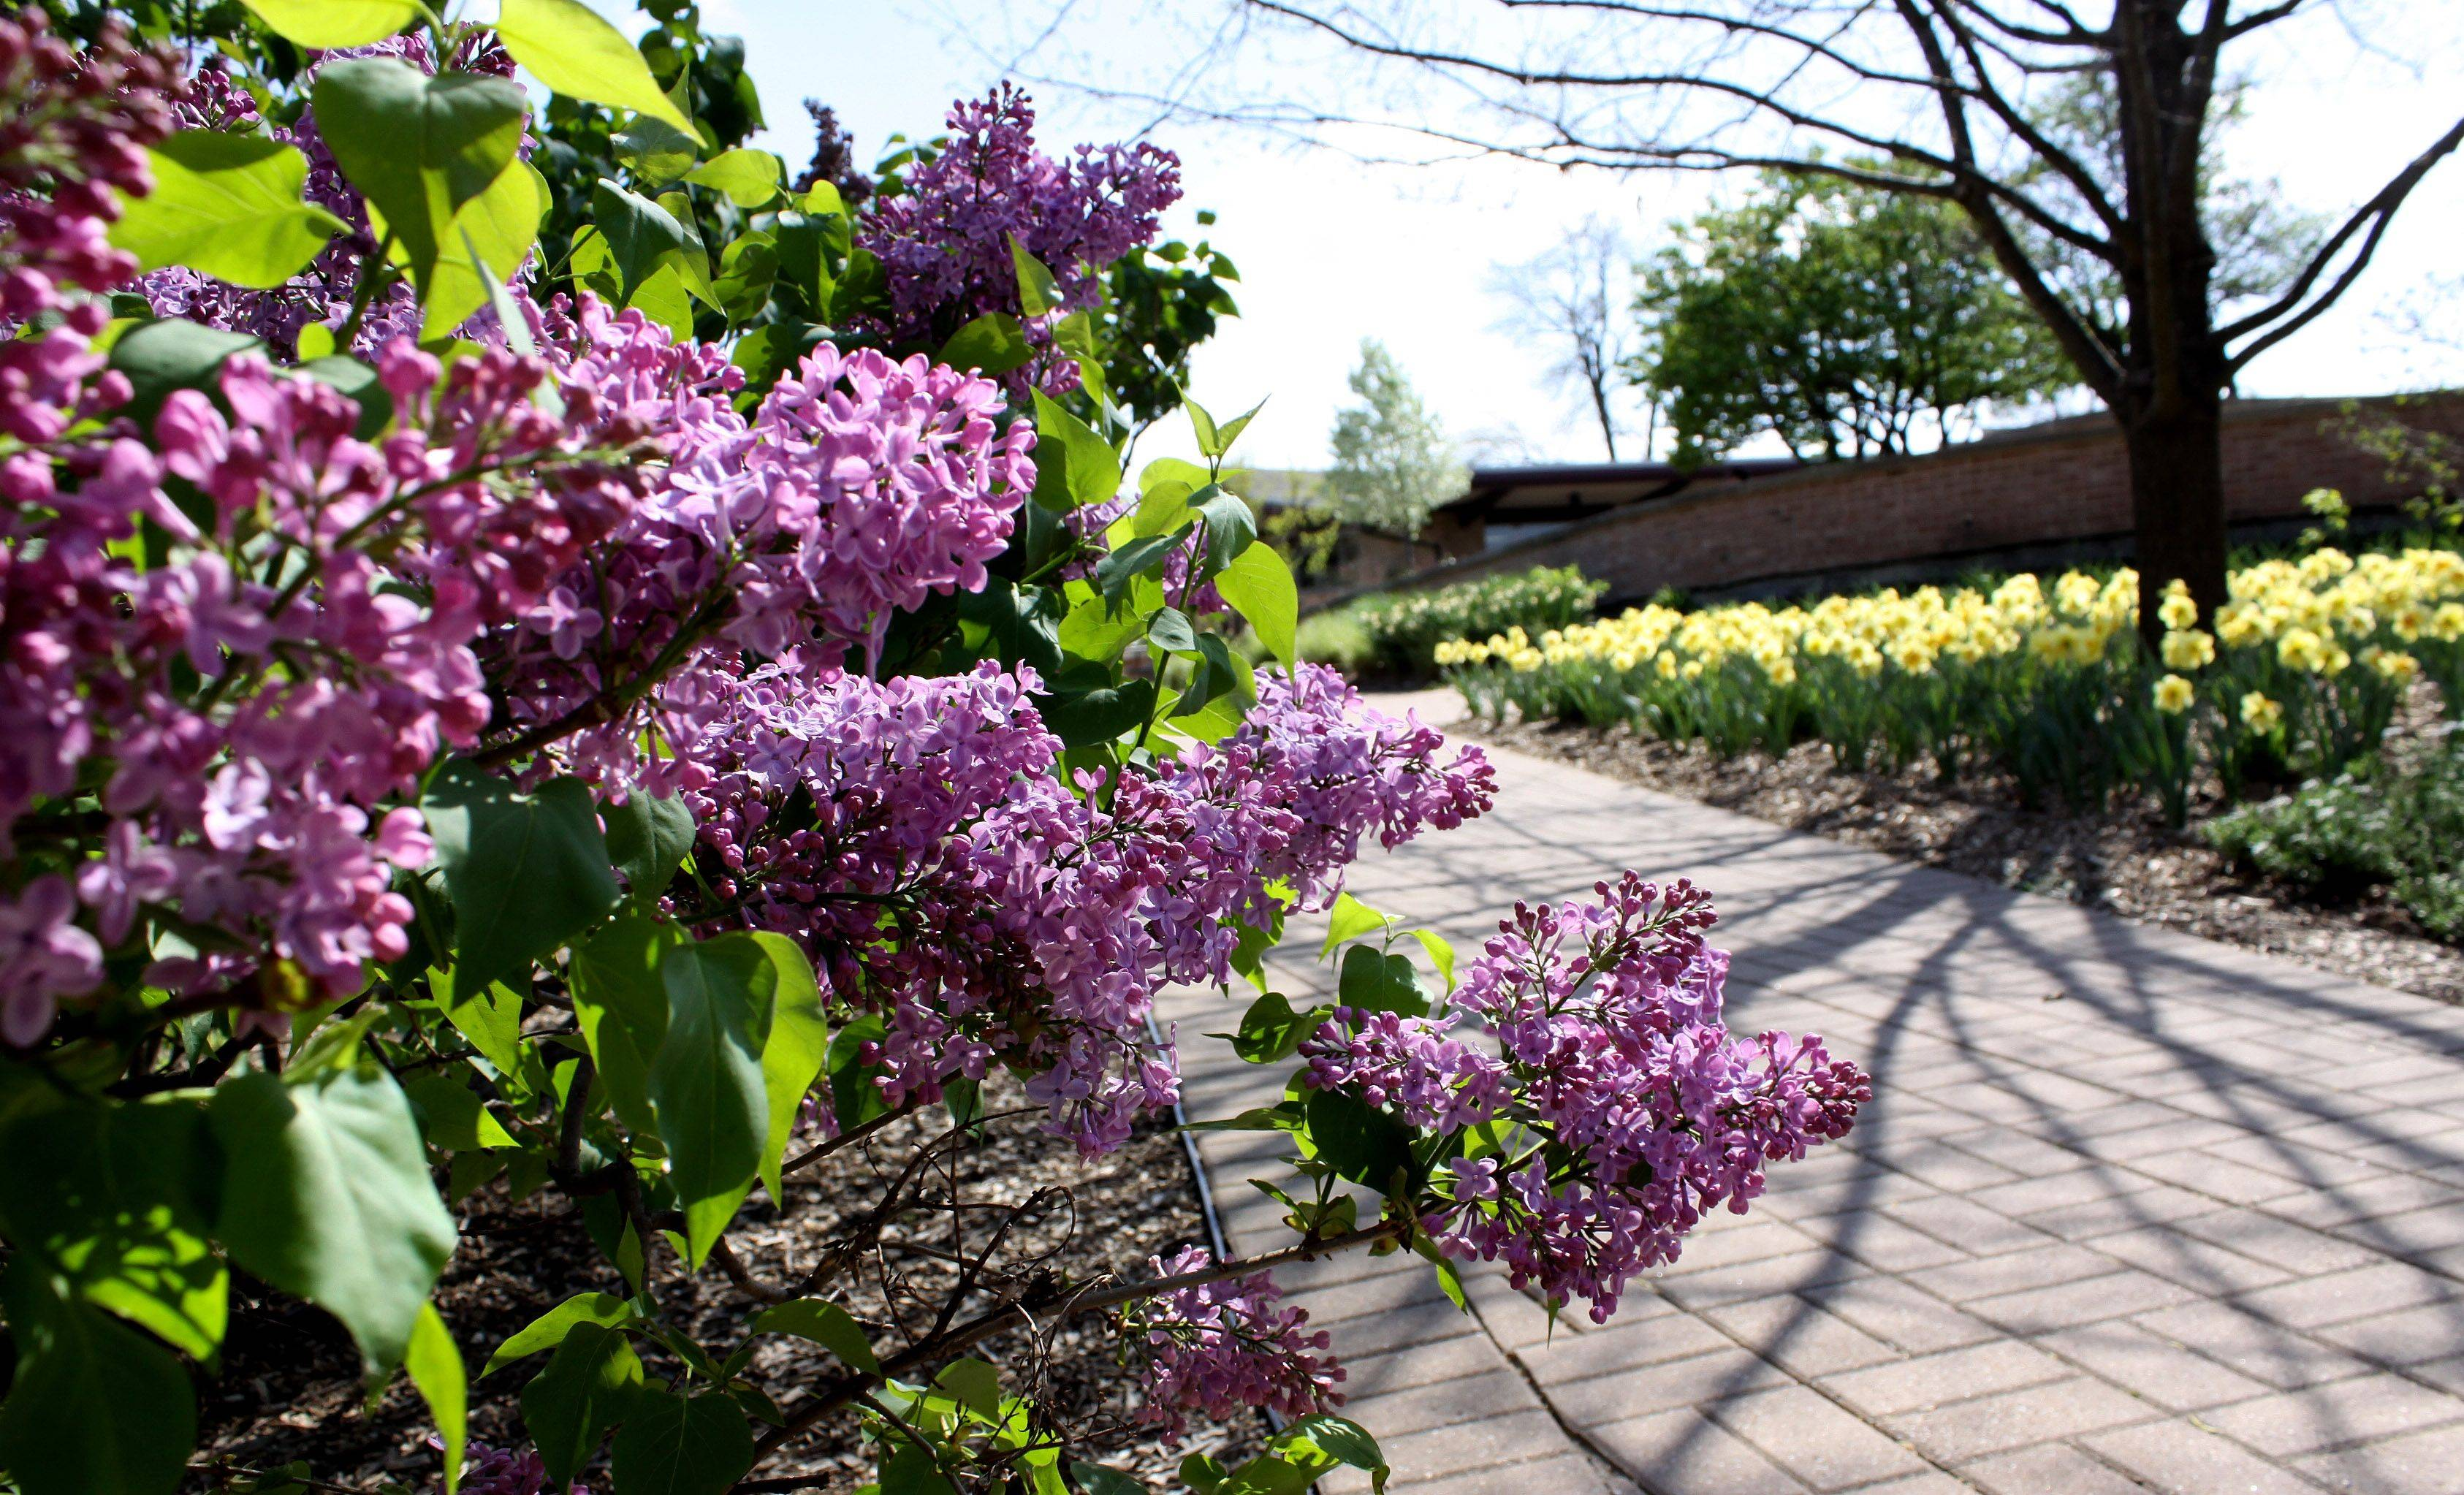 Lilacs bloom each spring in Lombard's Lilacia Park, drawing visitors to the village's Lilac Time parade and celebration.